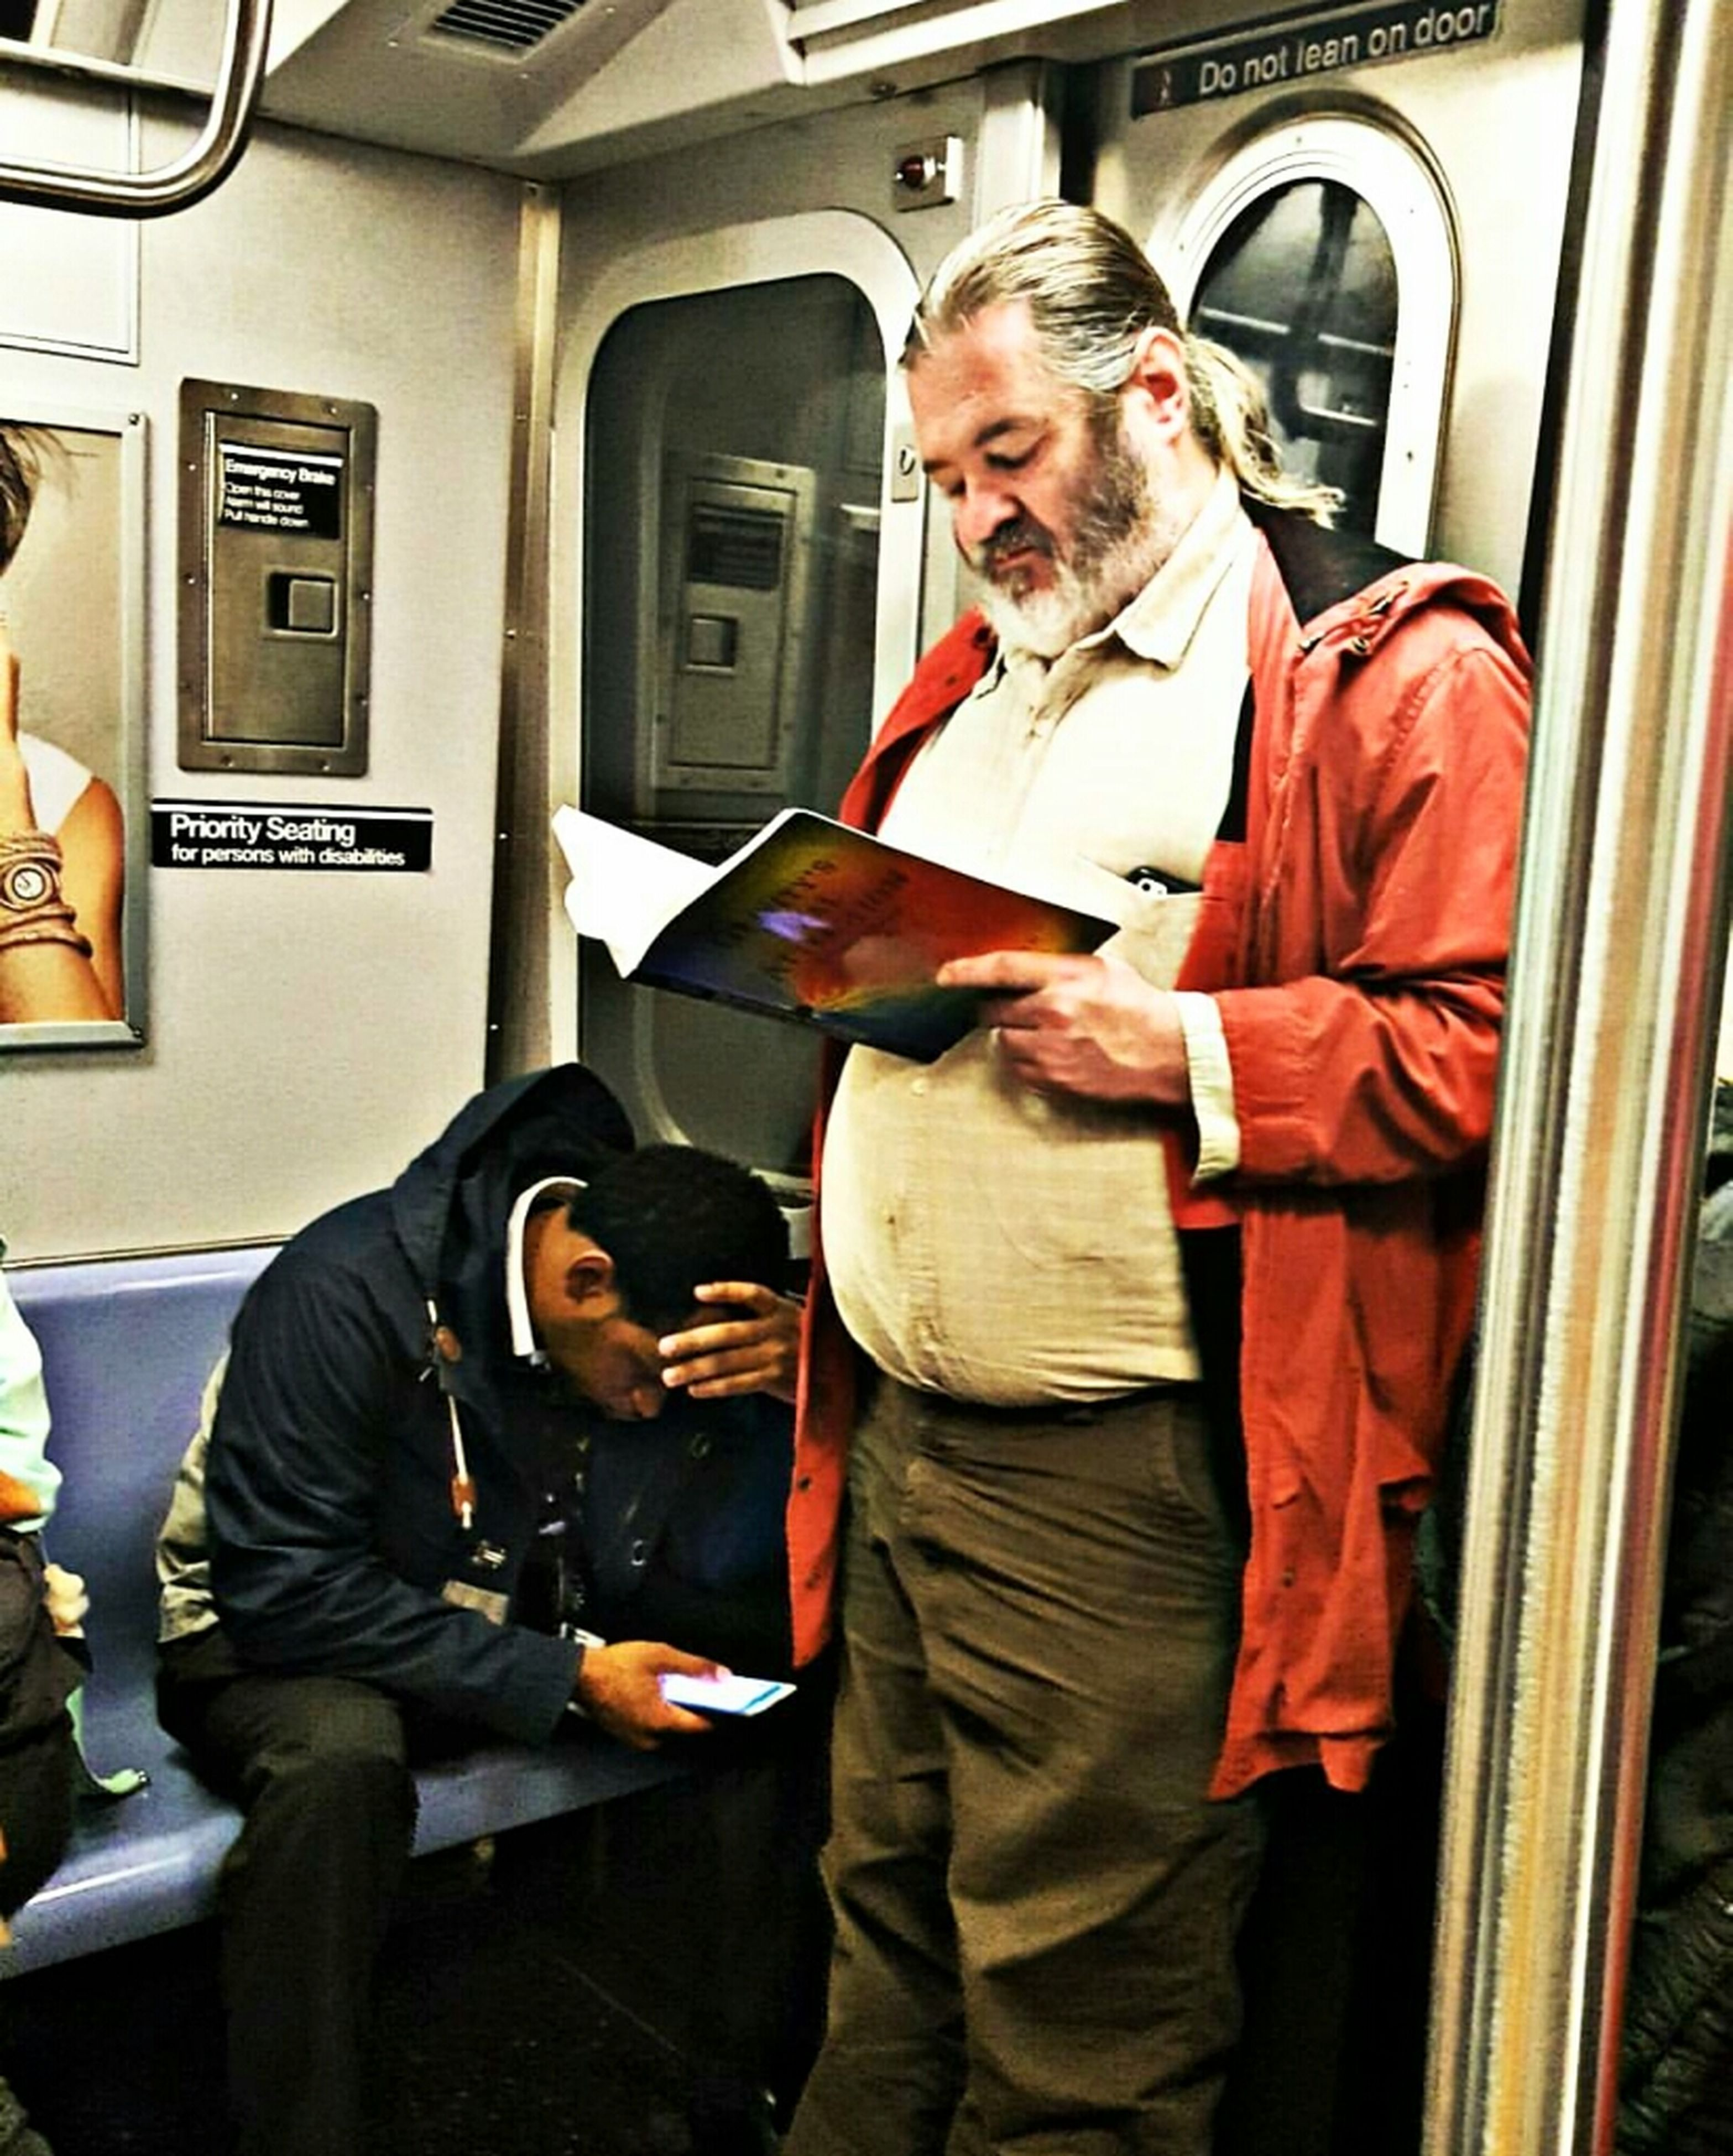 mature adult, public transportation, transportation, one mature man only, mode of transport, mature men, vehicle interior, one person, adults only, only men, subway train, people, day, indoors, one man only, adult